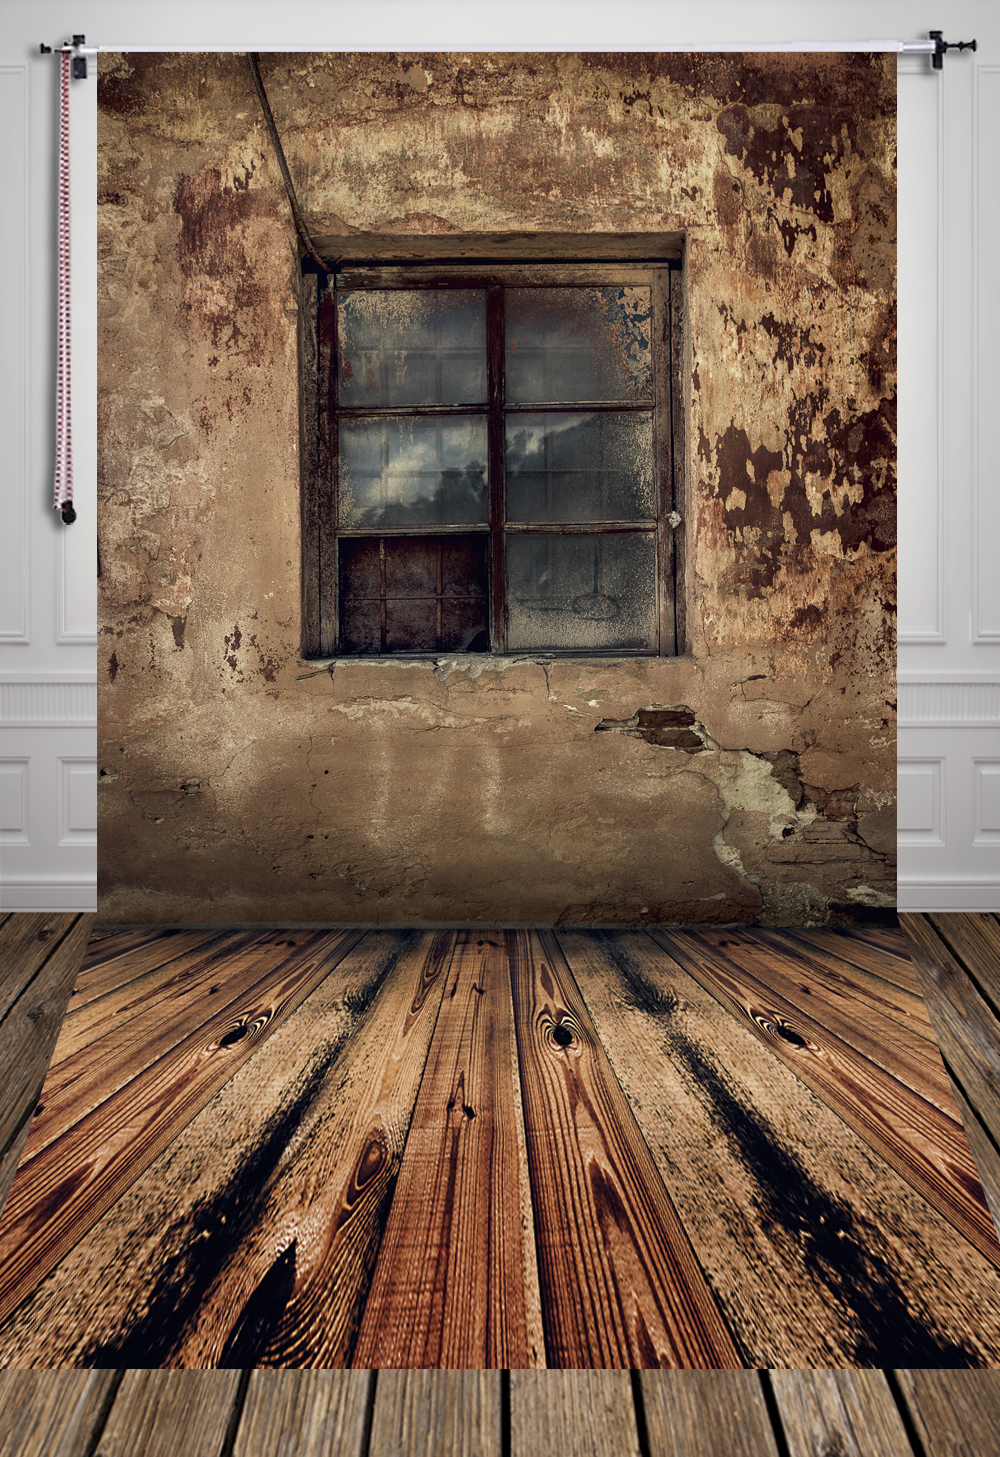 Art Fabric Photography Backdrop Vintage Window on Wall and Wooden Floor Backdrop Custom Photo Prop backgrounds 5ft X 7ft D-920 huayi 5x5ft 1 5x1 5m art fabric vintage wooden floor wedding photography background newborn photo studio prop backdrop d 7436